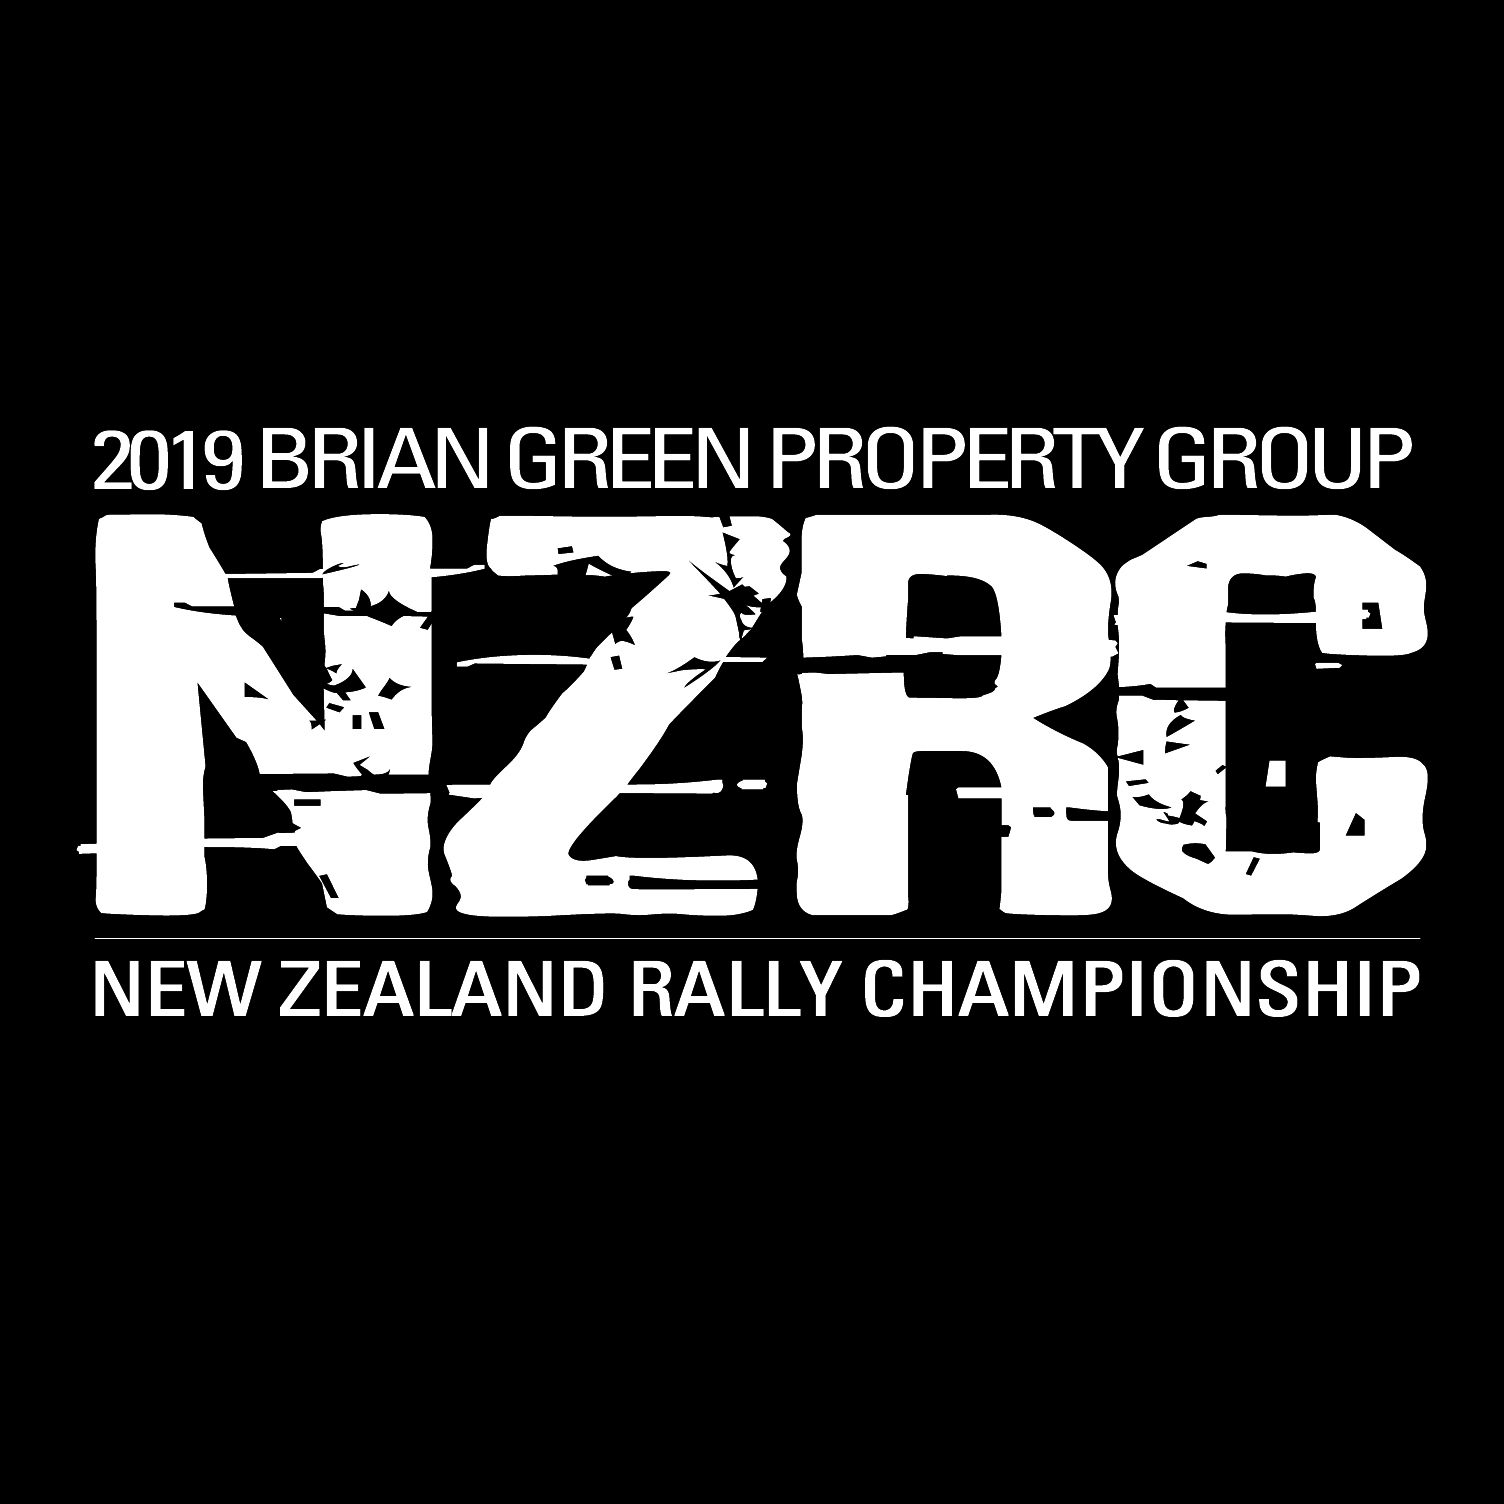 Contact | :: Brian Green Property Group New Zealand Rally Championship ::